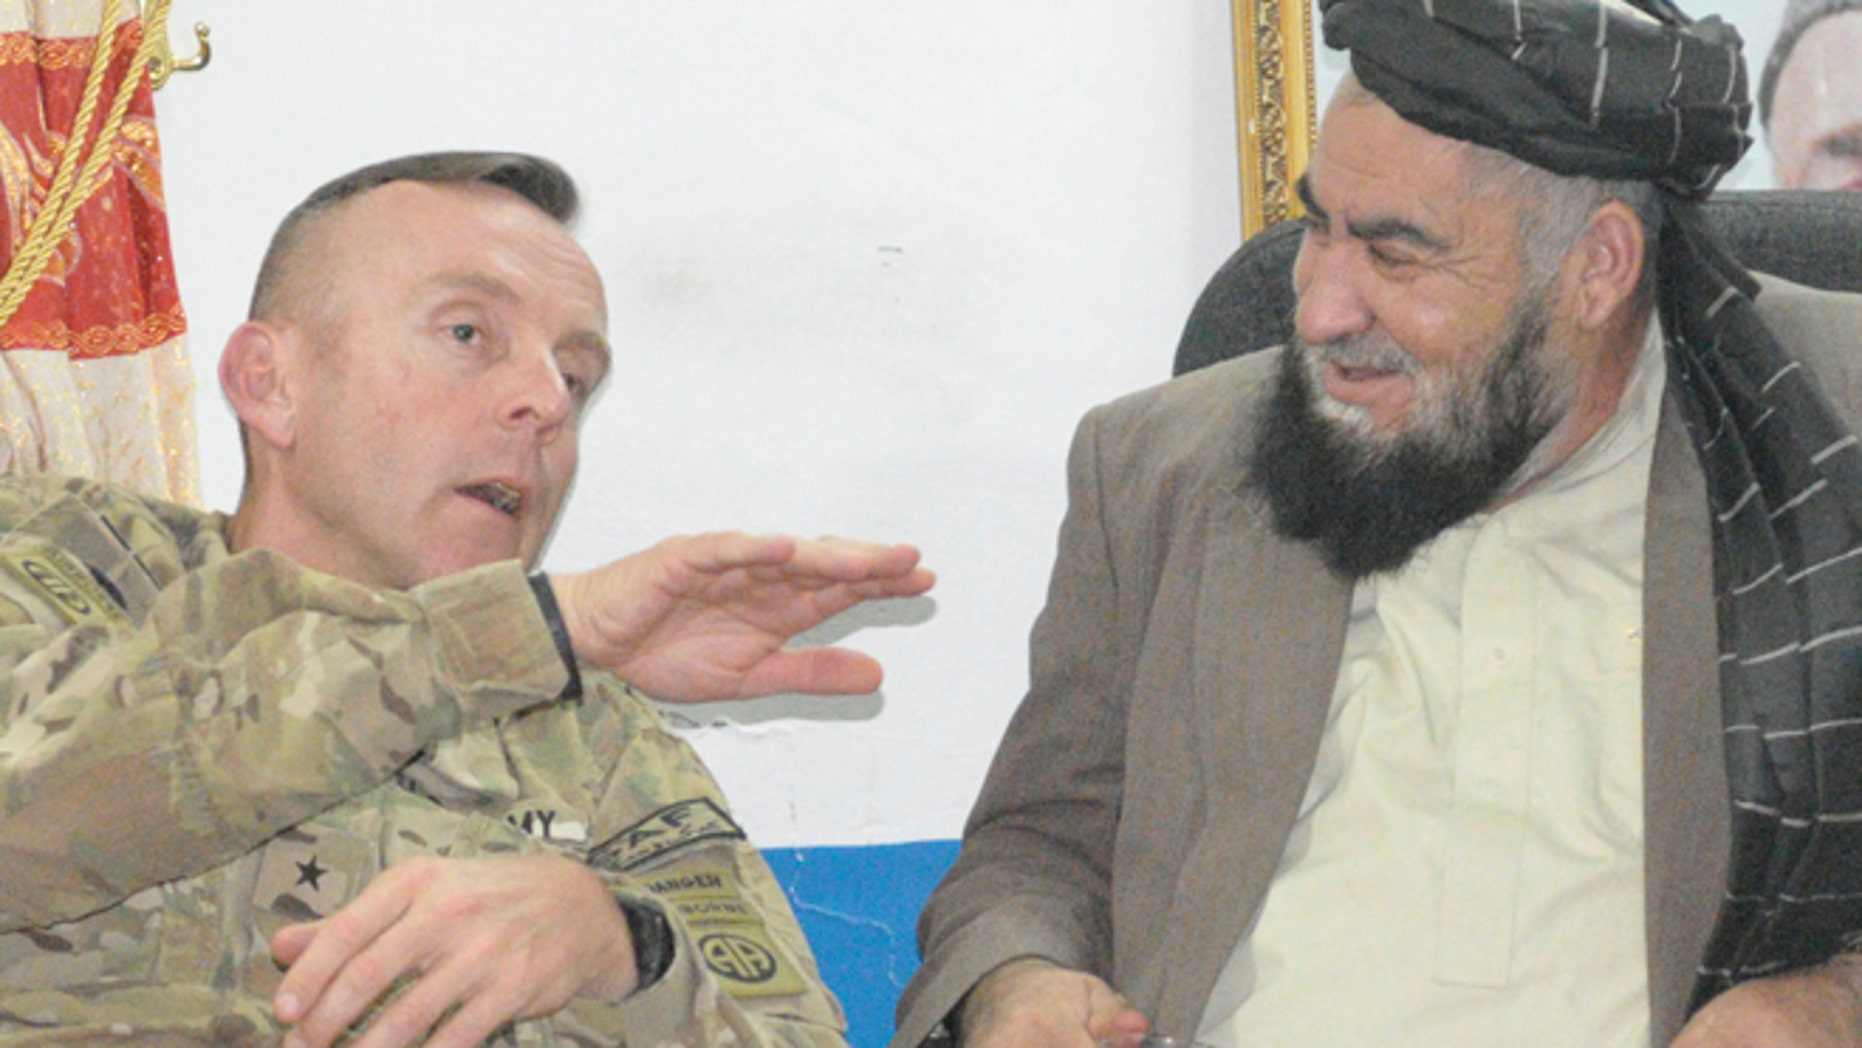 FILE 2011: Brigadier General Jeffrey Sinclair seen in Afghanistan talking with a local governor. Sinclair, once a rising star, is accused of sexually assaulting a captain under his command with whom he had a three-year affair.